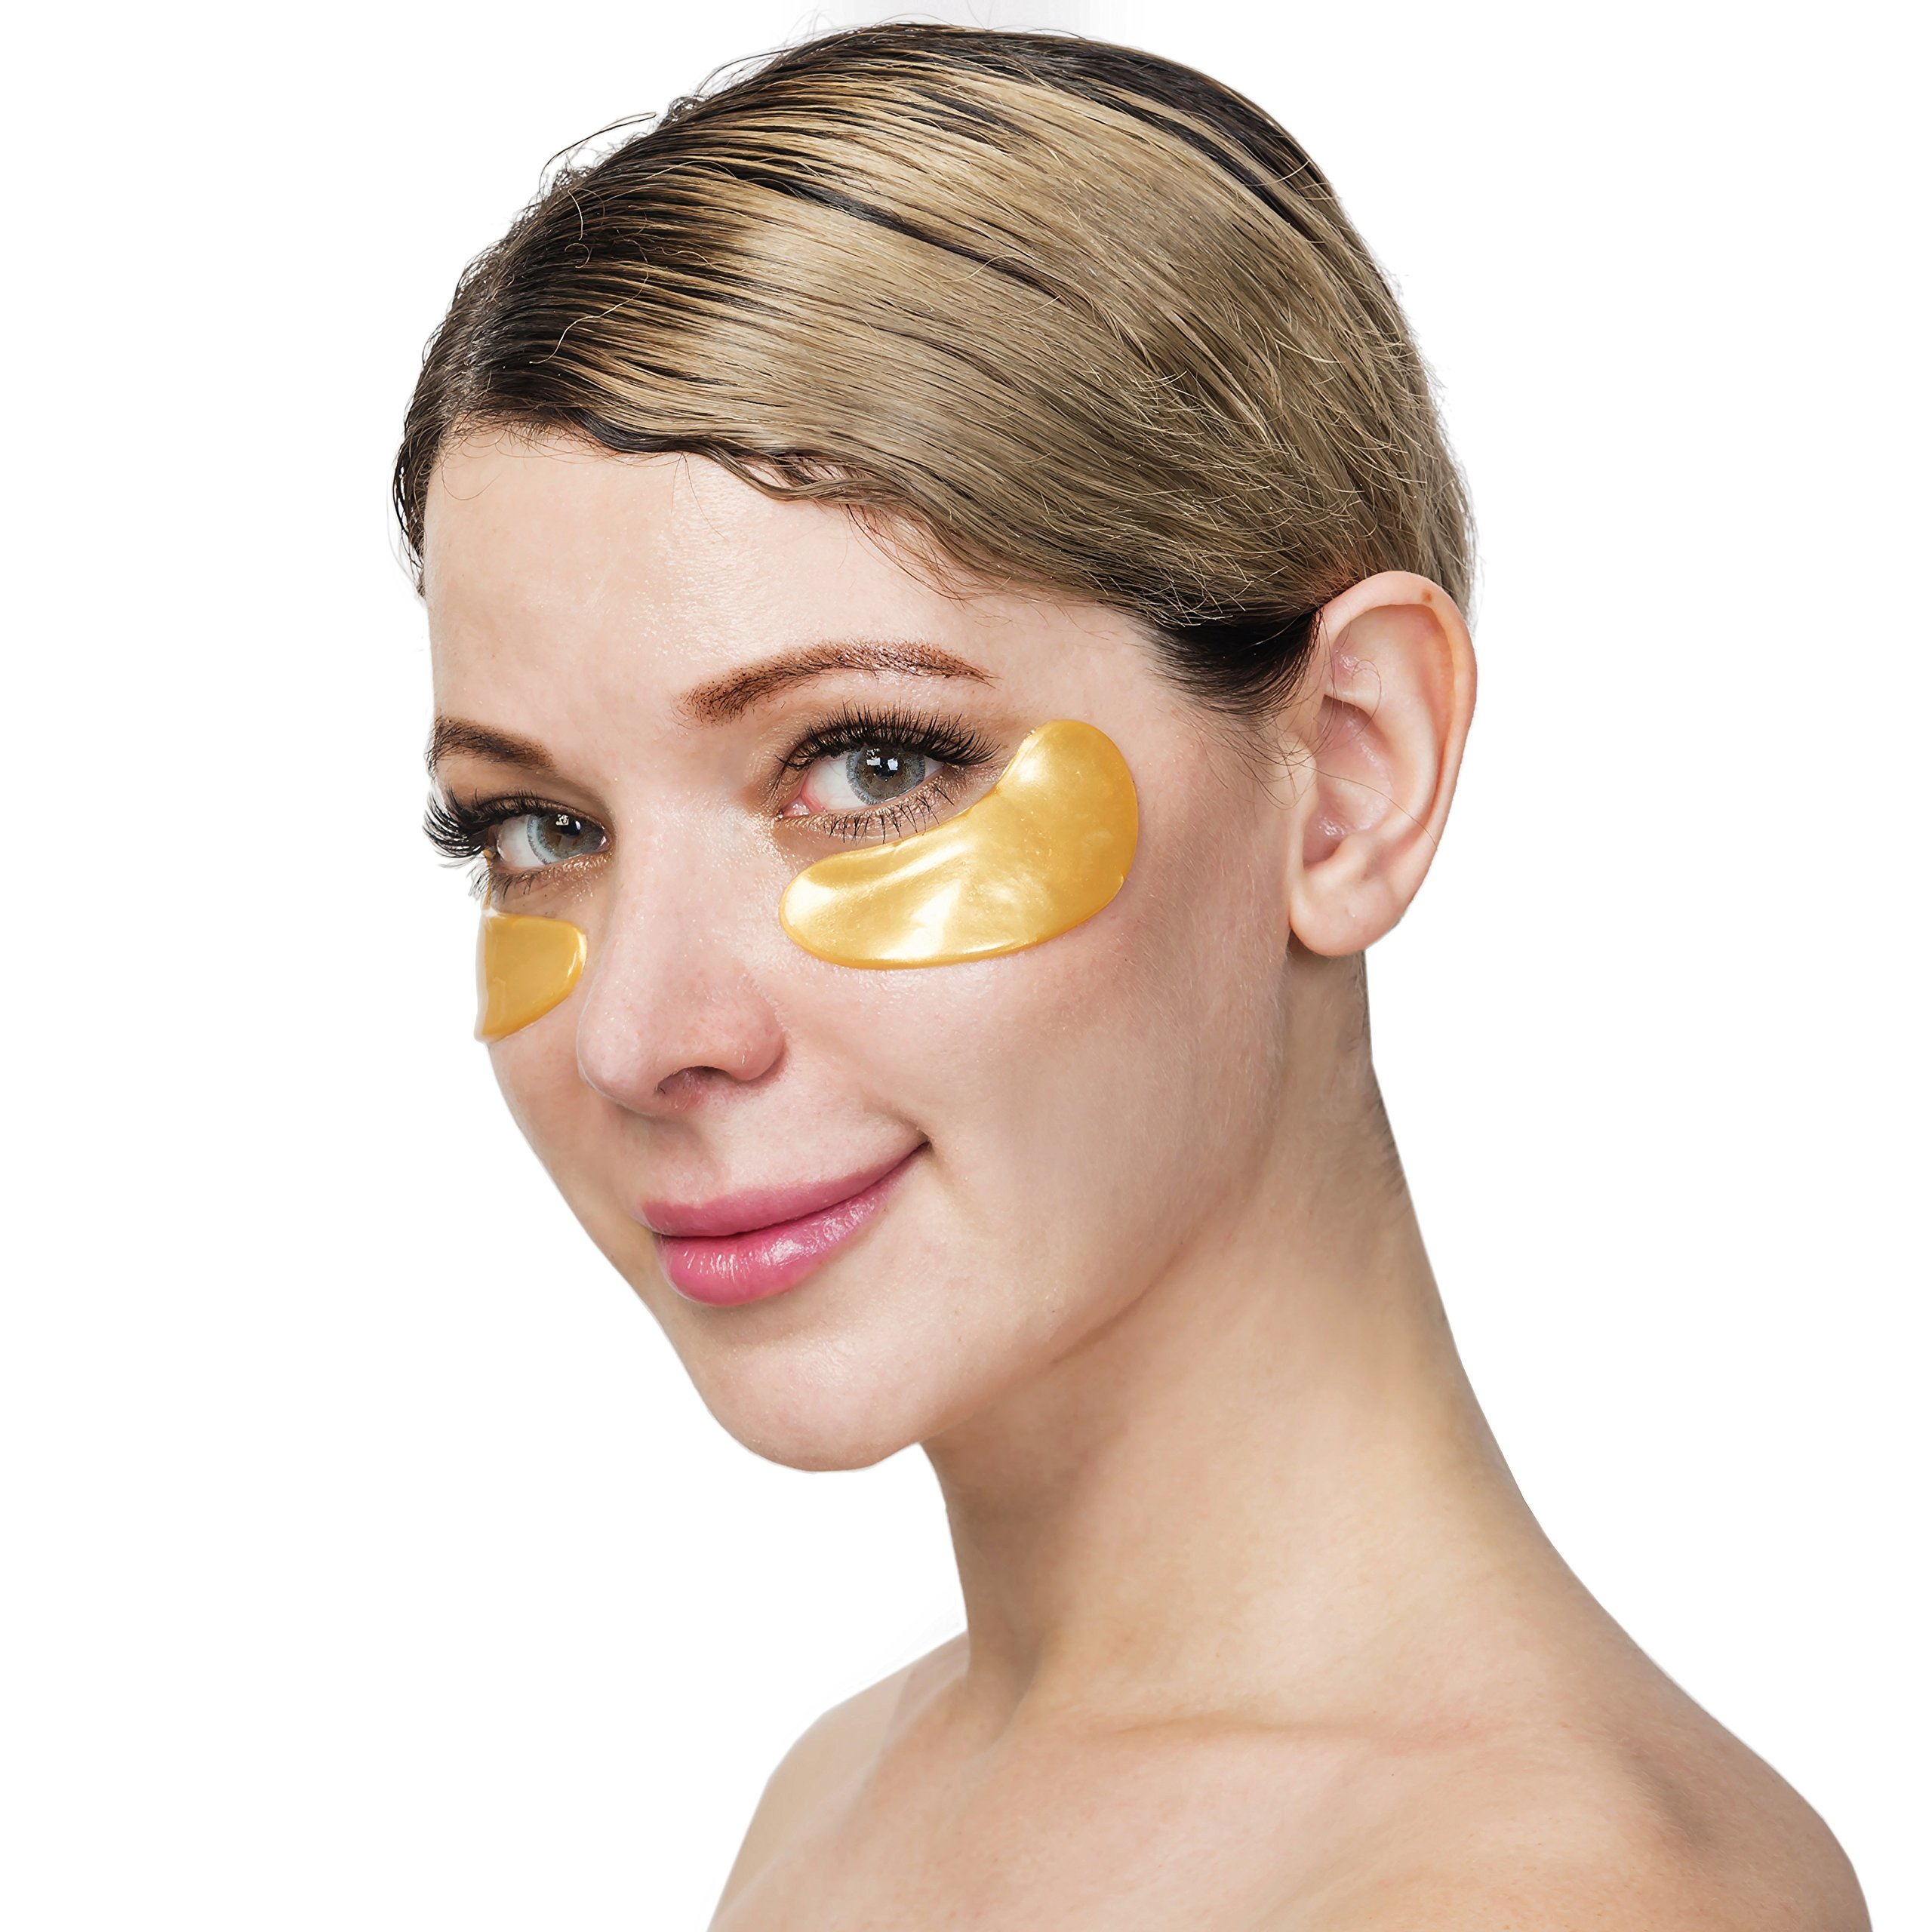 Under Eye Bags Treatment - Gel For Puffiness, Wrinkles, Dark Circles, Crows Feet, Puffy Eyes -24k Gold Luxury - The Best Natural Collagen Mask - Women And Men Masks - Anti Aging Moisturizer Pads by Thomas Estelle (Image #9)